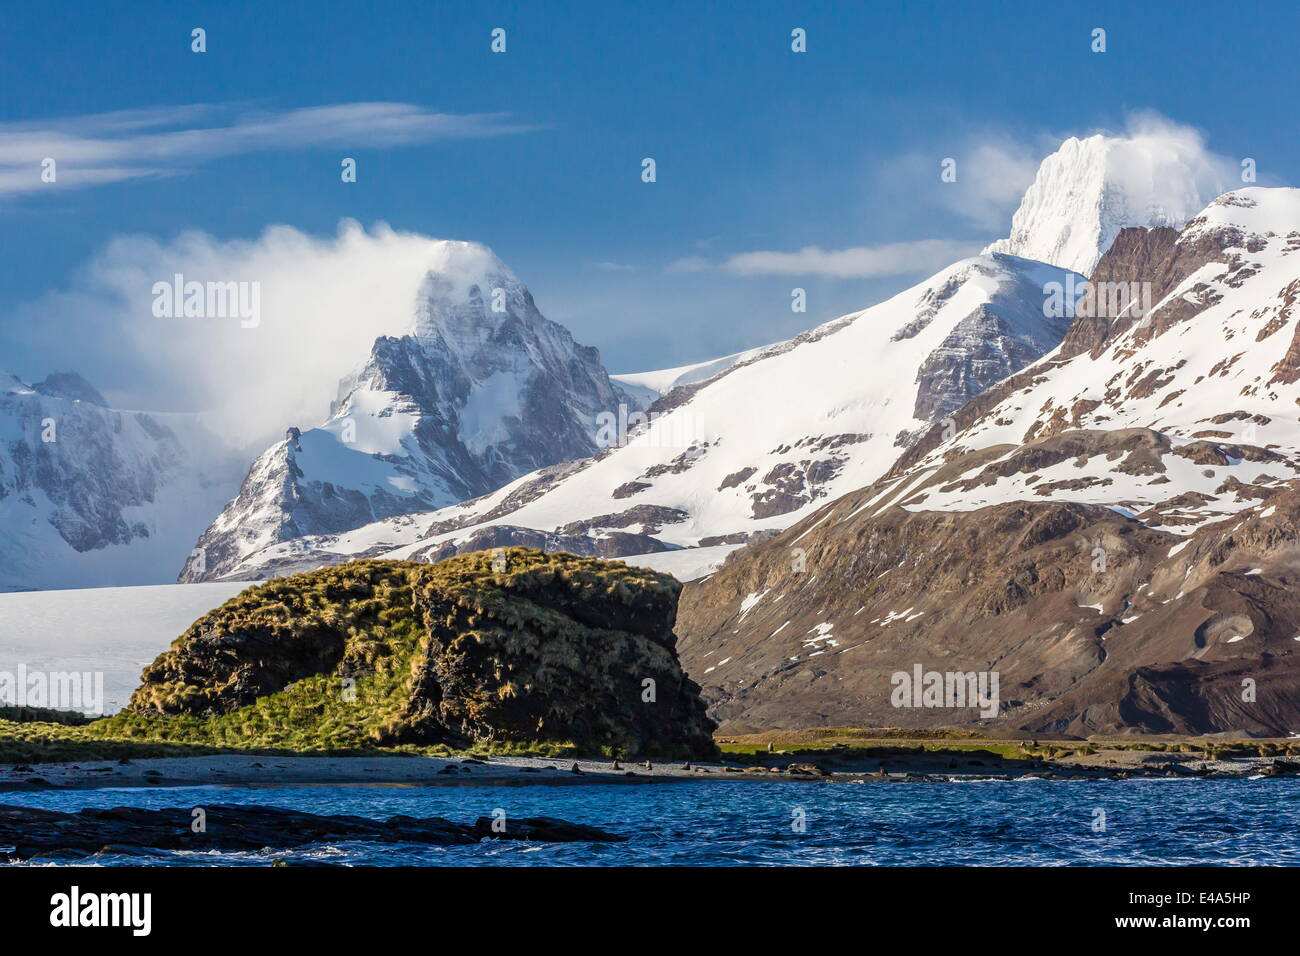 Misty clouds shroud snow-covered peaks in Fortuna Bay, South Georgia, UK Overseas Protectorate, Polar Regions - Stock Image